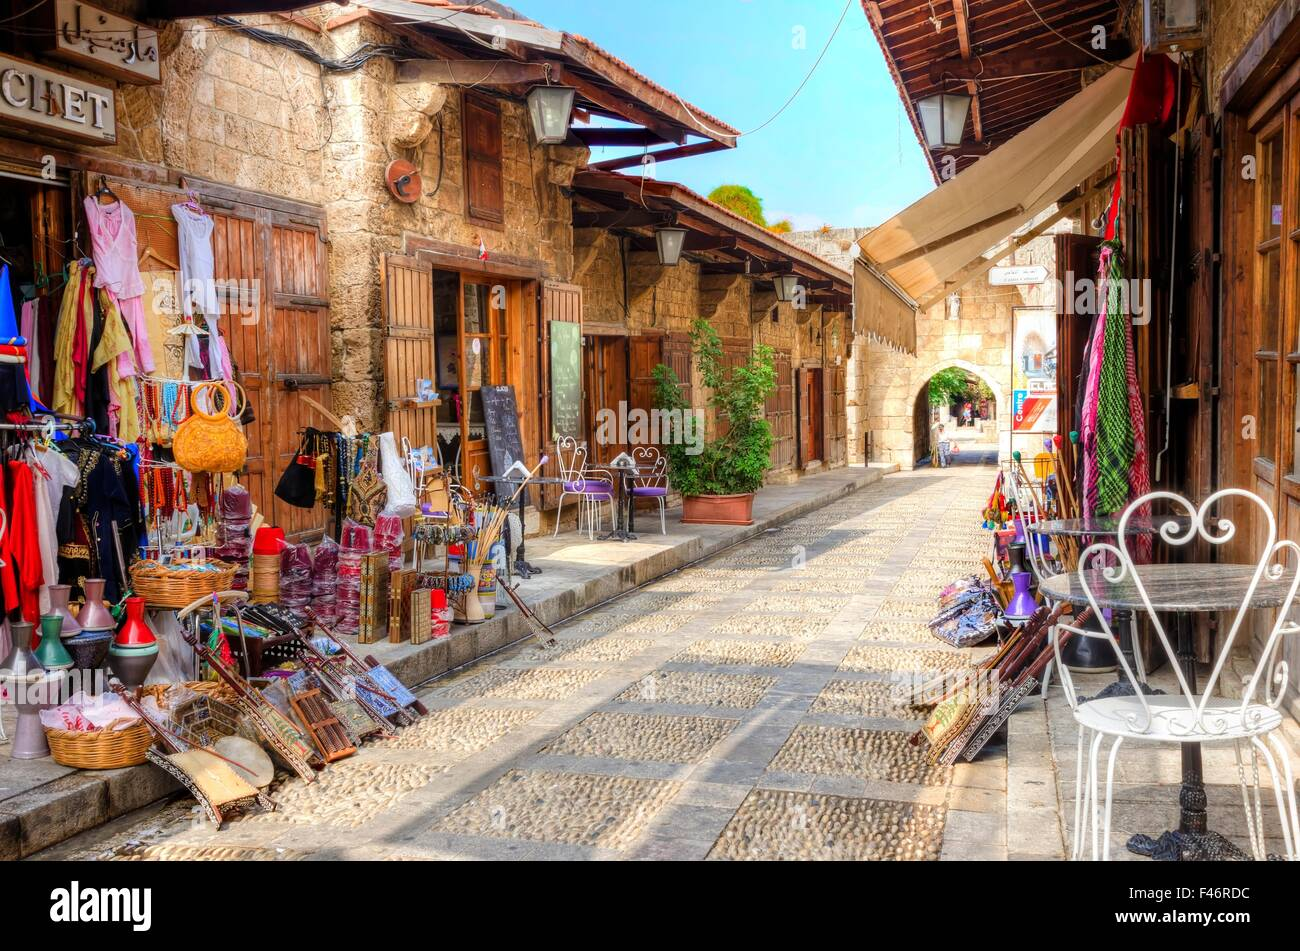 .The traditional old souks of Byblos, Lb | Good morning ... |Old Byblos Lebanon